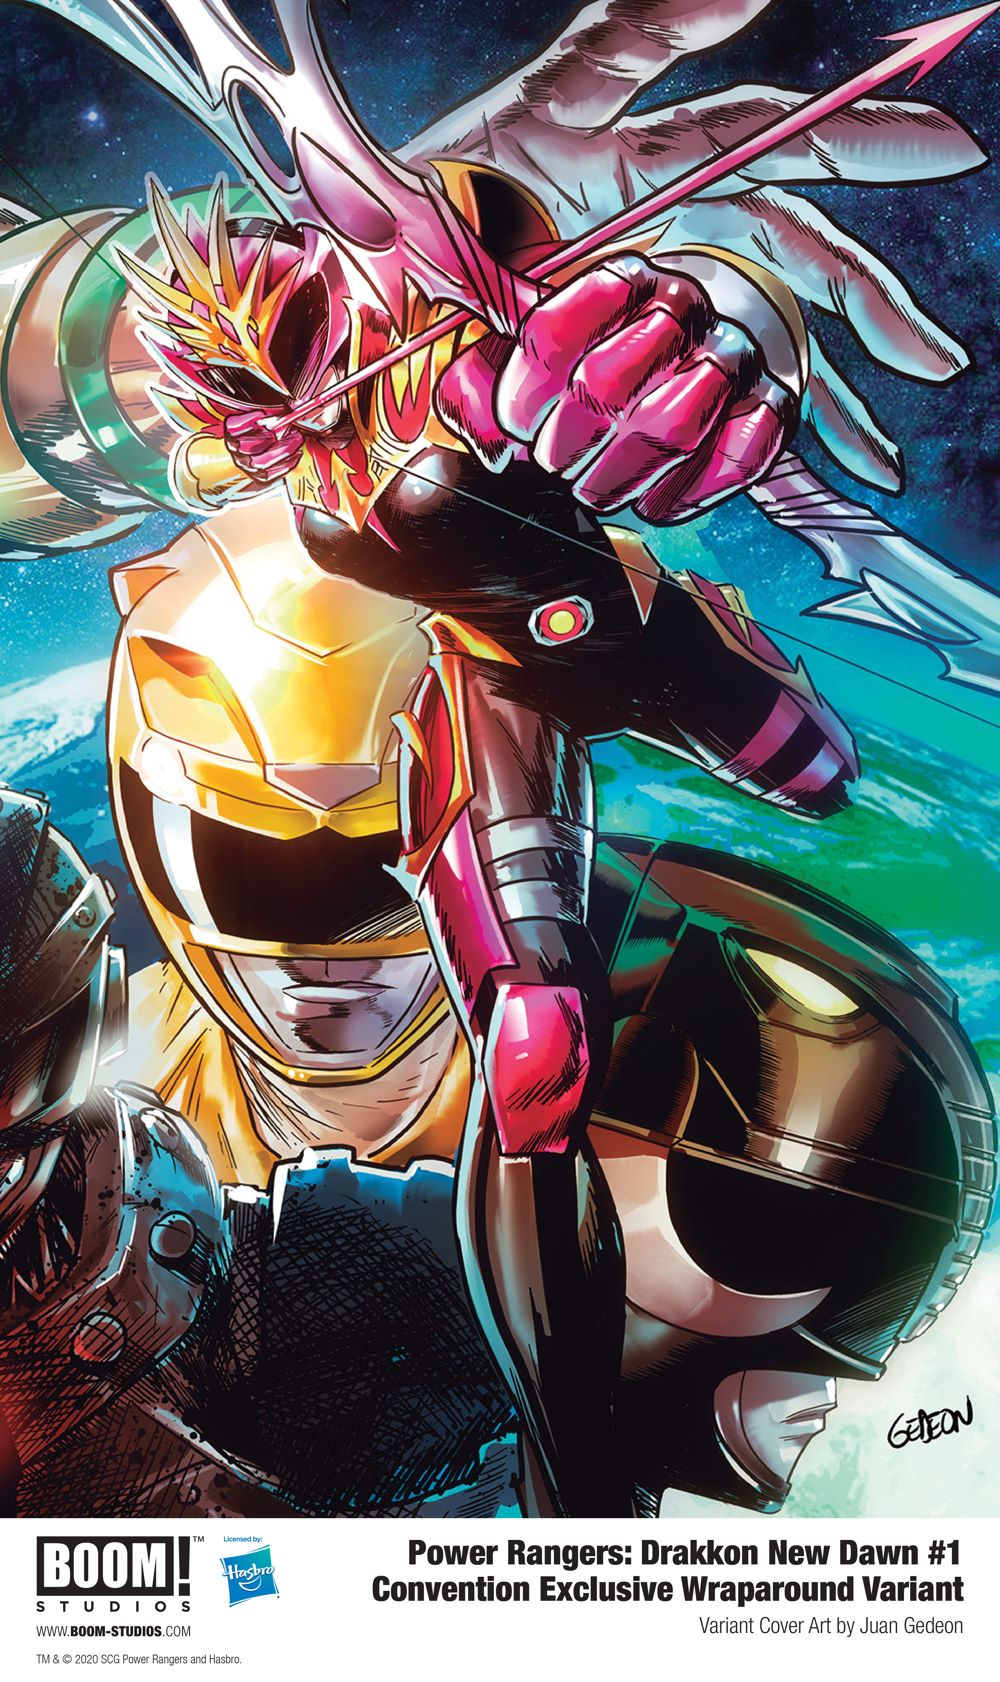 PowerRangers_Drakkon_NewDawn_001_Cover_Convention_PROMO BOOM! Studios 2020 Convention Variants to be sold at comic shops